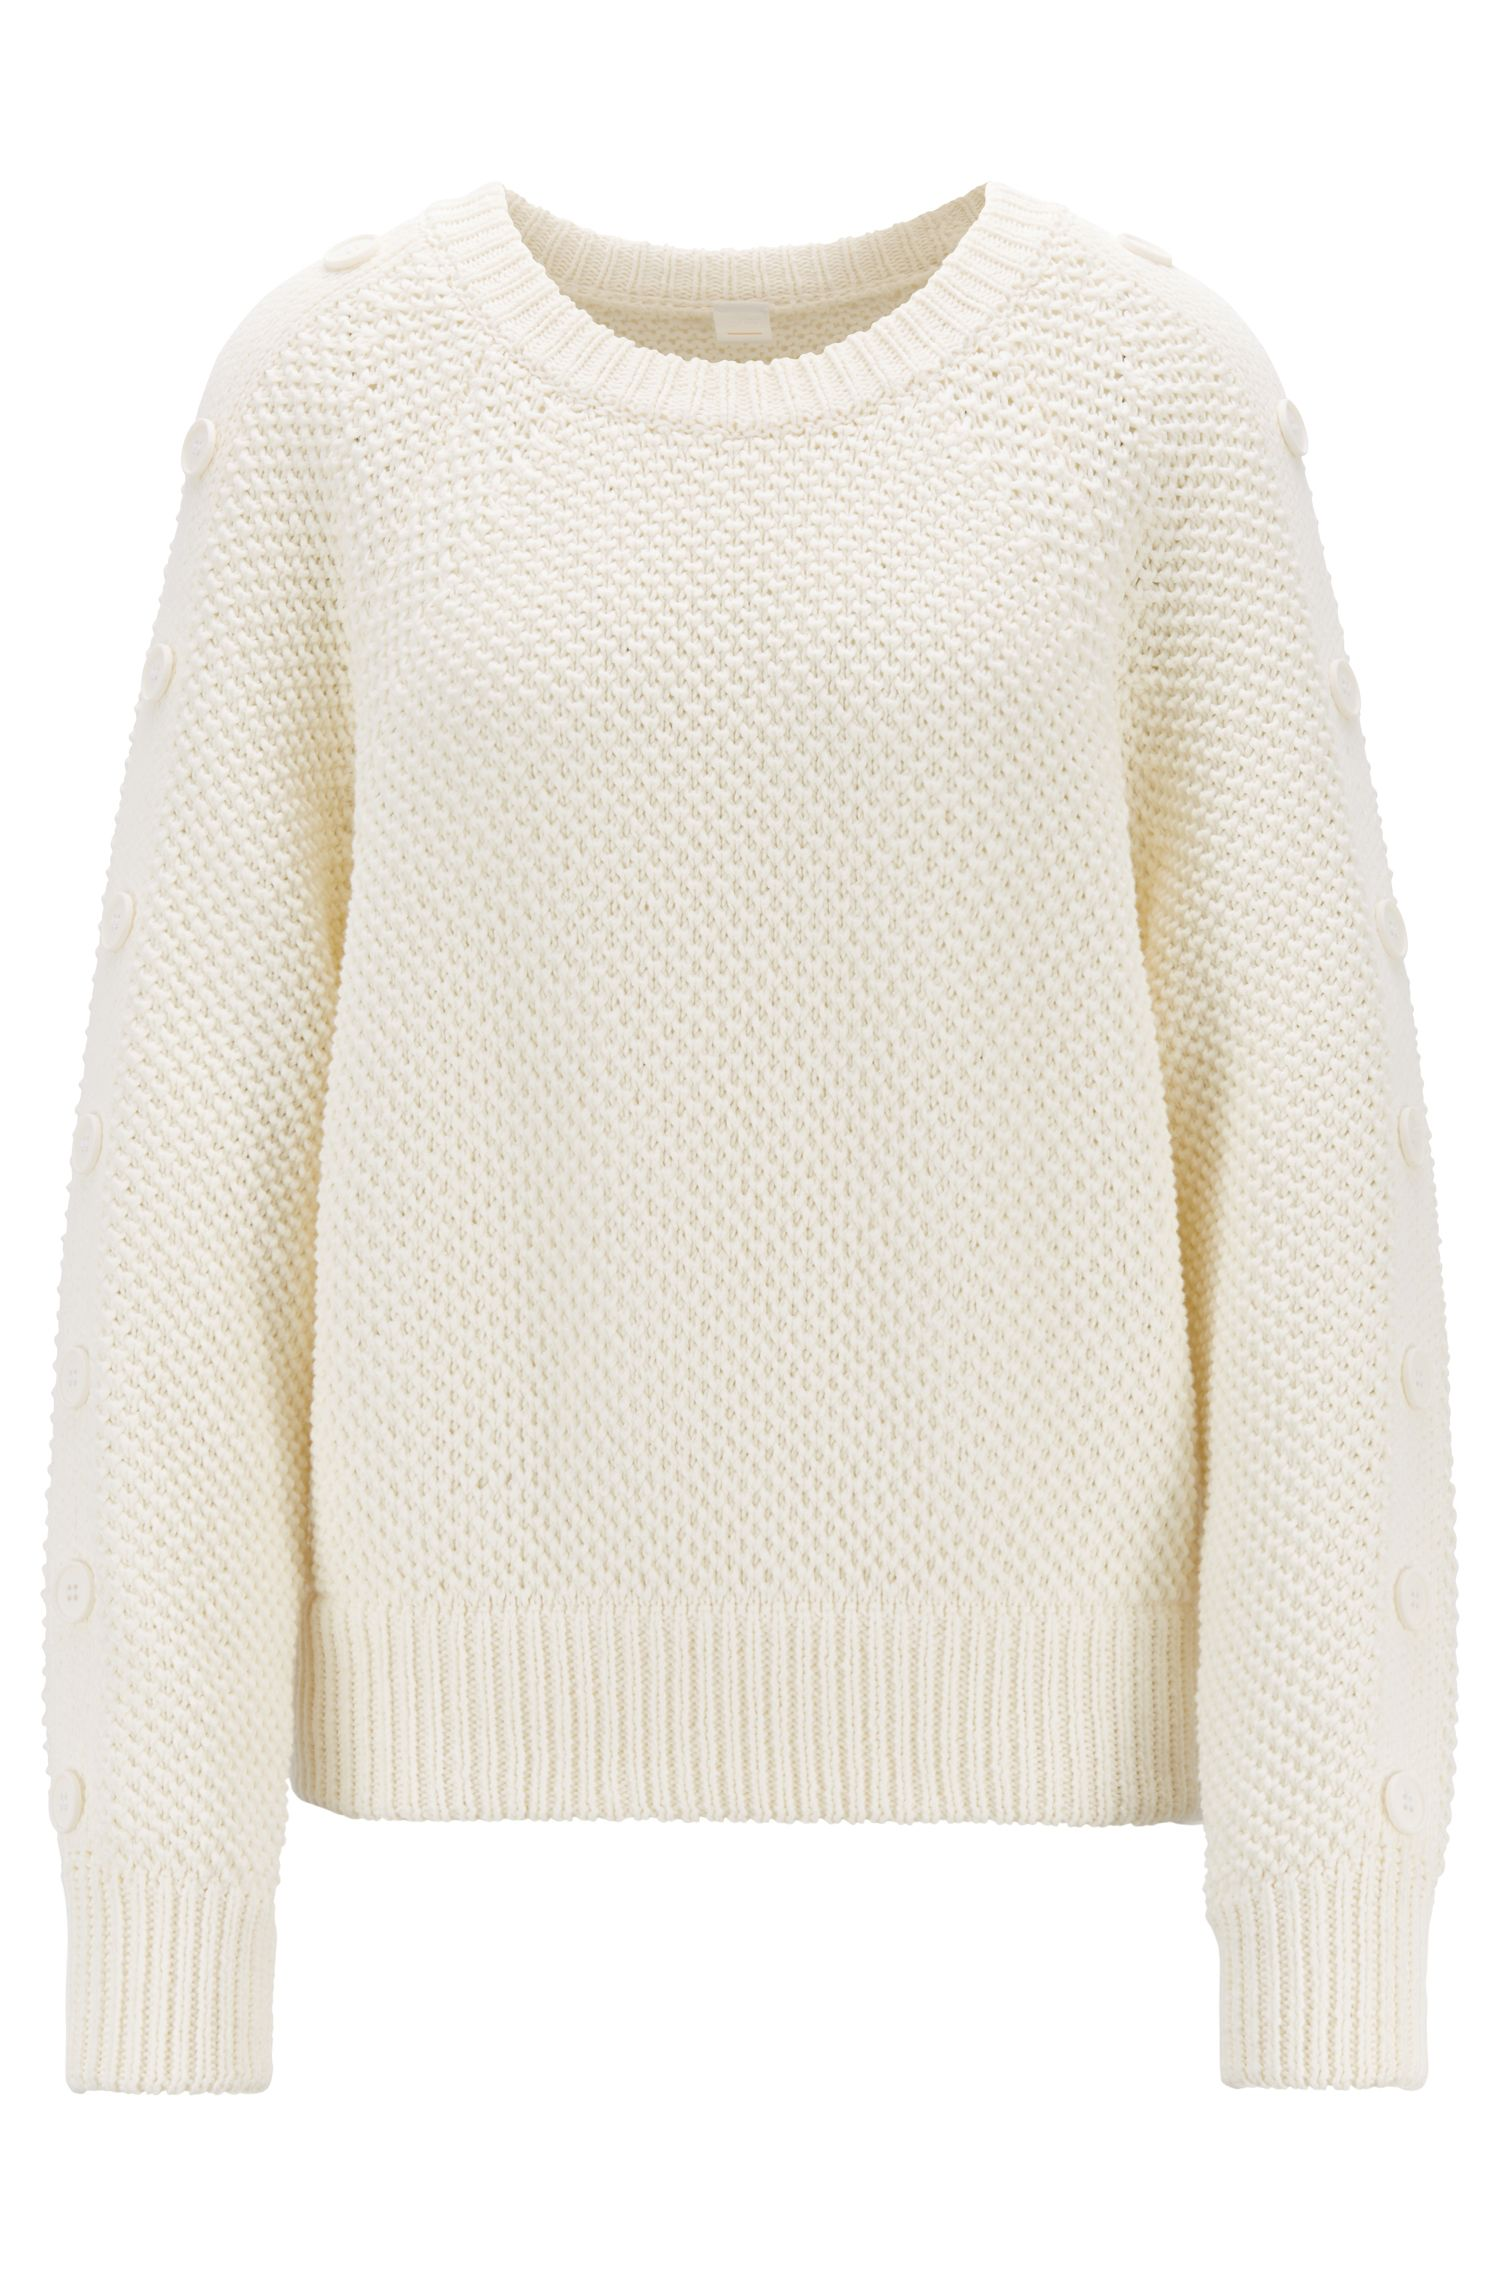 Oversized-fit knitted sweater with button-detail sleeves, Natural